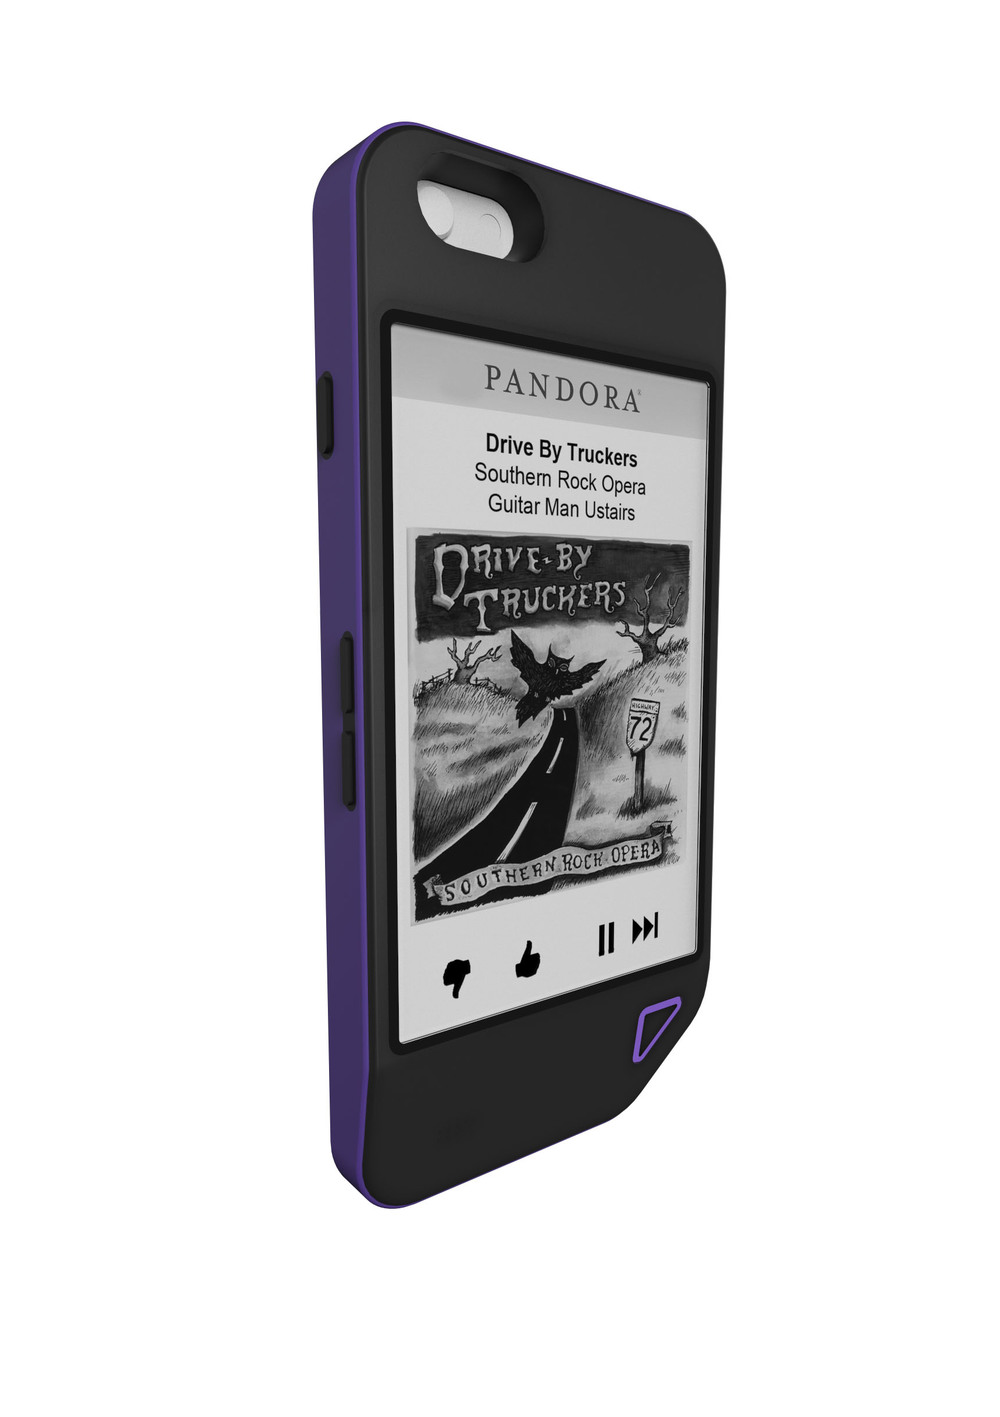 pandora application lithocase application rendering industrial design keyshot